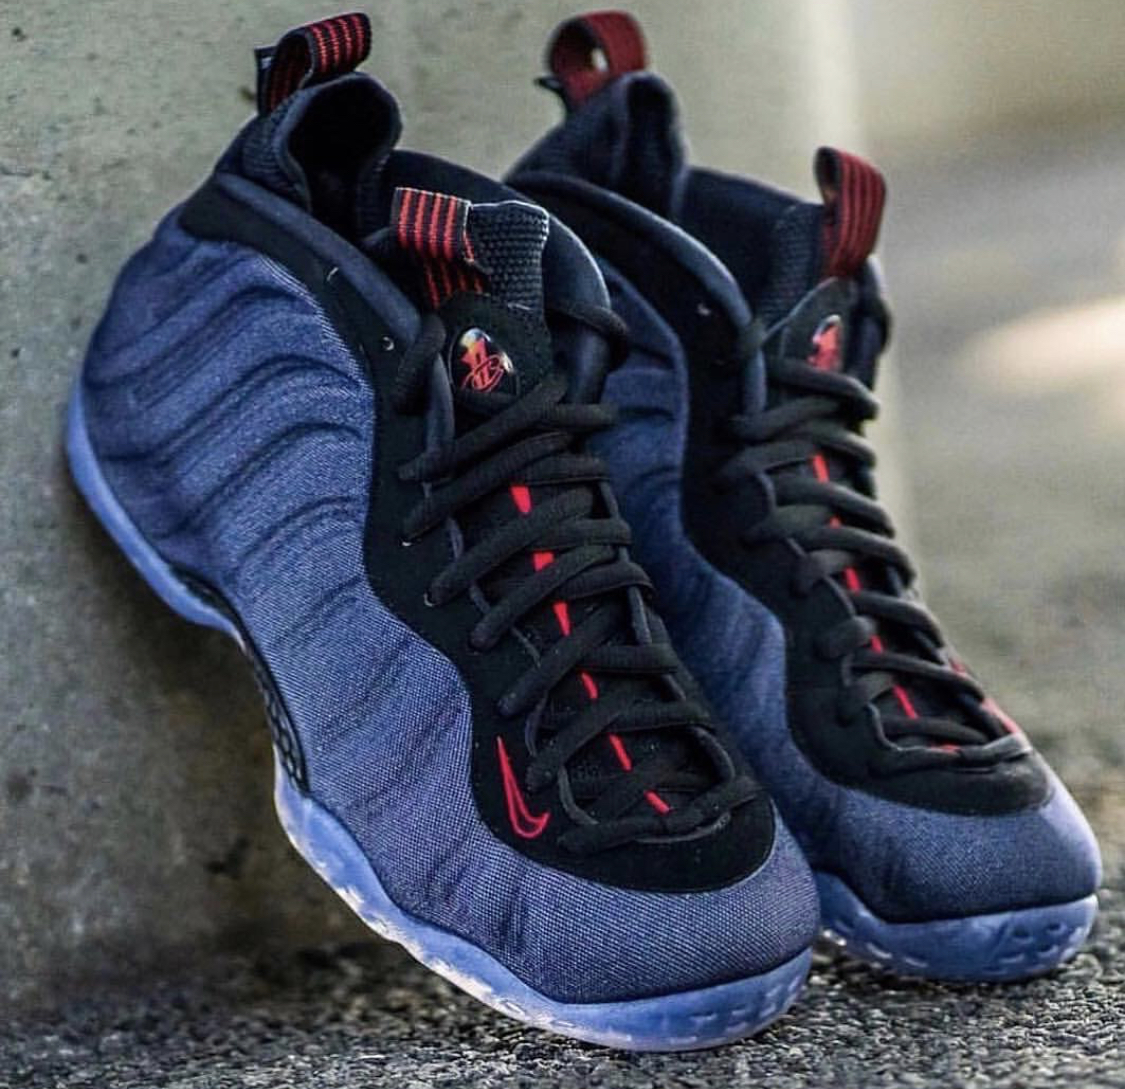 new concept f589d 964ac Now Available: Nike Air Foamposite One